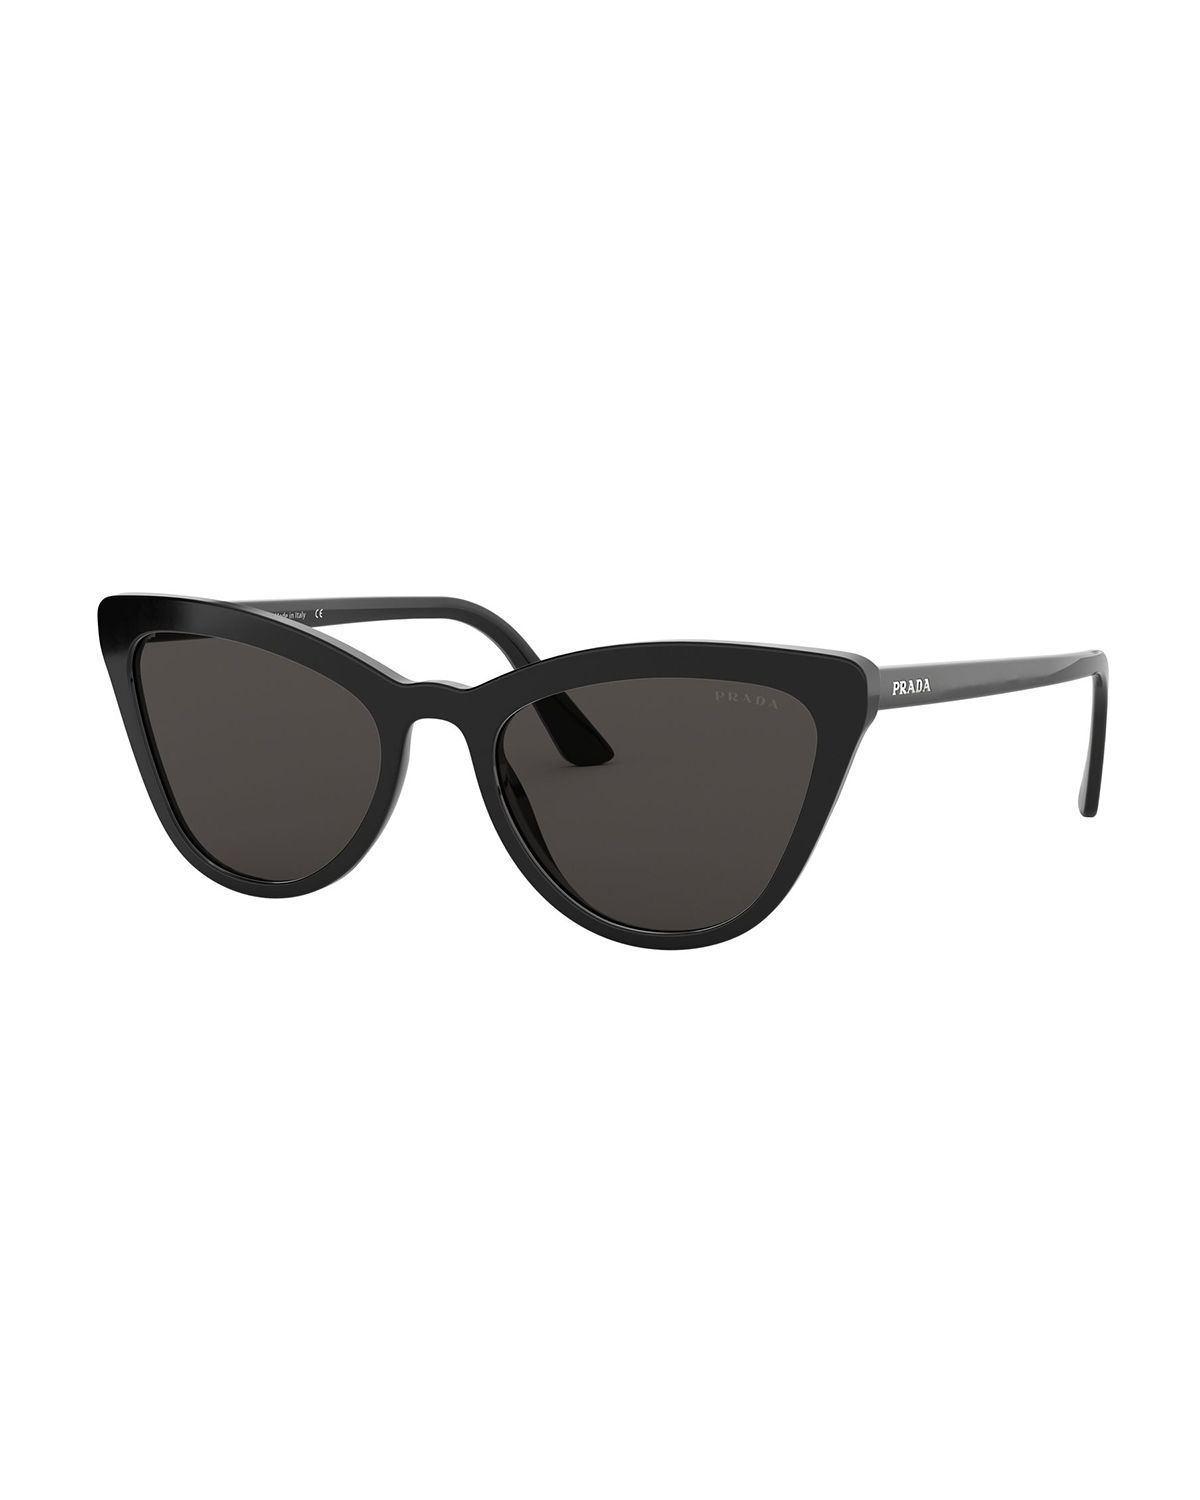 87975d30ad3 Prada Acetate Cat-Eye Sunglasses